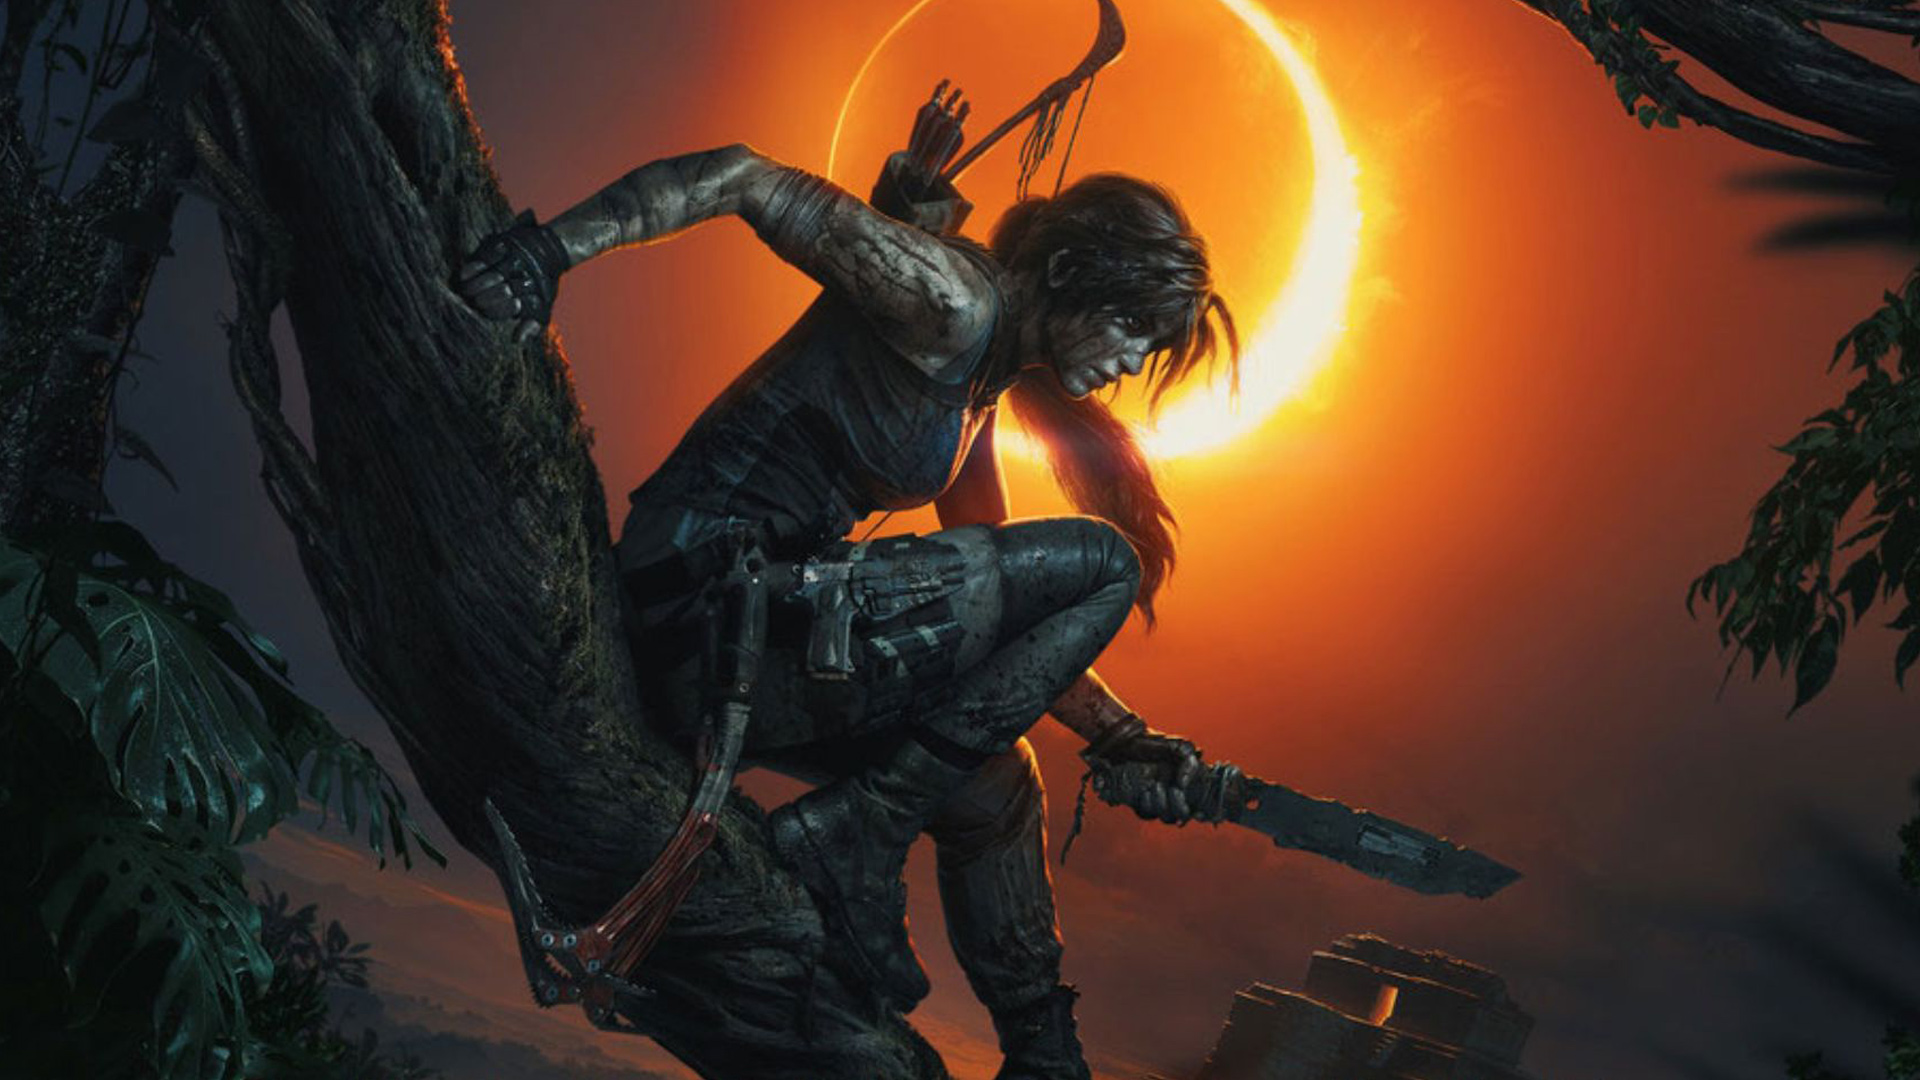 E3 2018: NVIDIA's GPU Powers Shadow of the Tomb Raider To Life